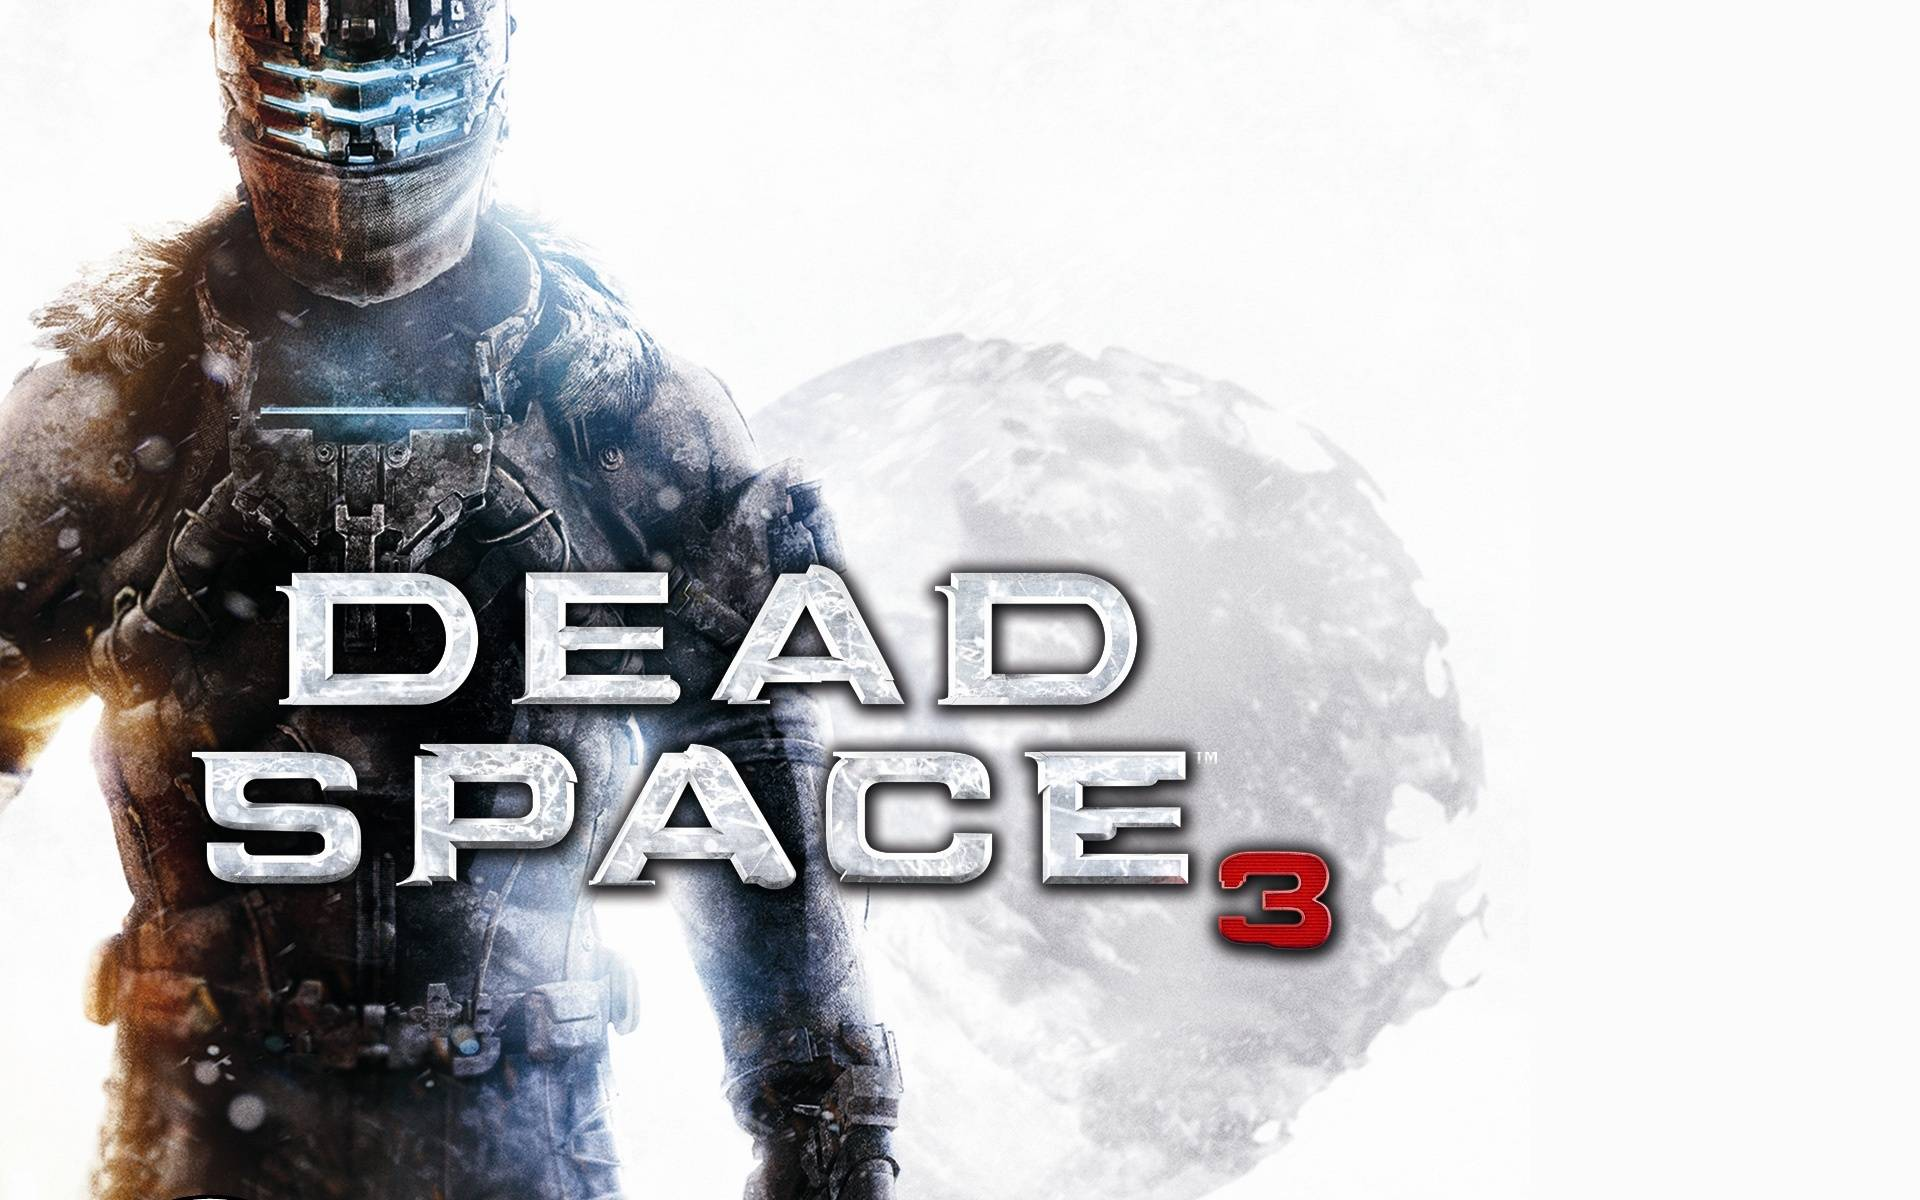 Dead Space 3 has been somewhat of a controversial game as of late, some believe it to be one of the best games of this generation while others are highly ...